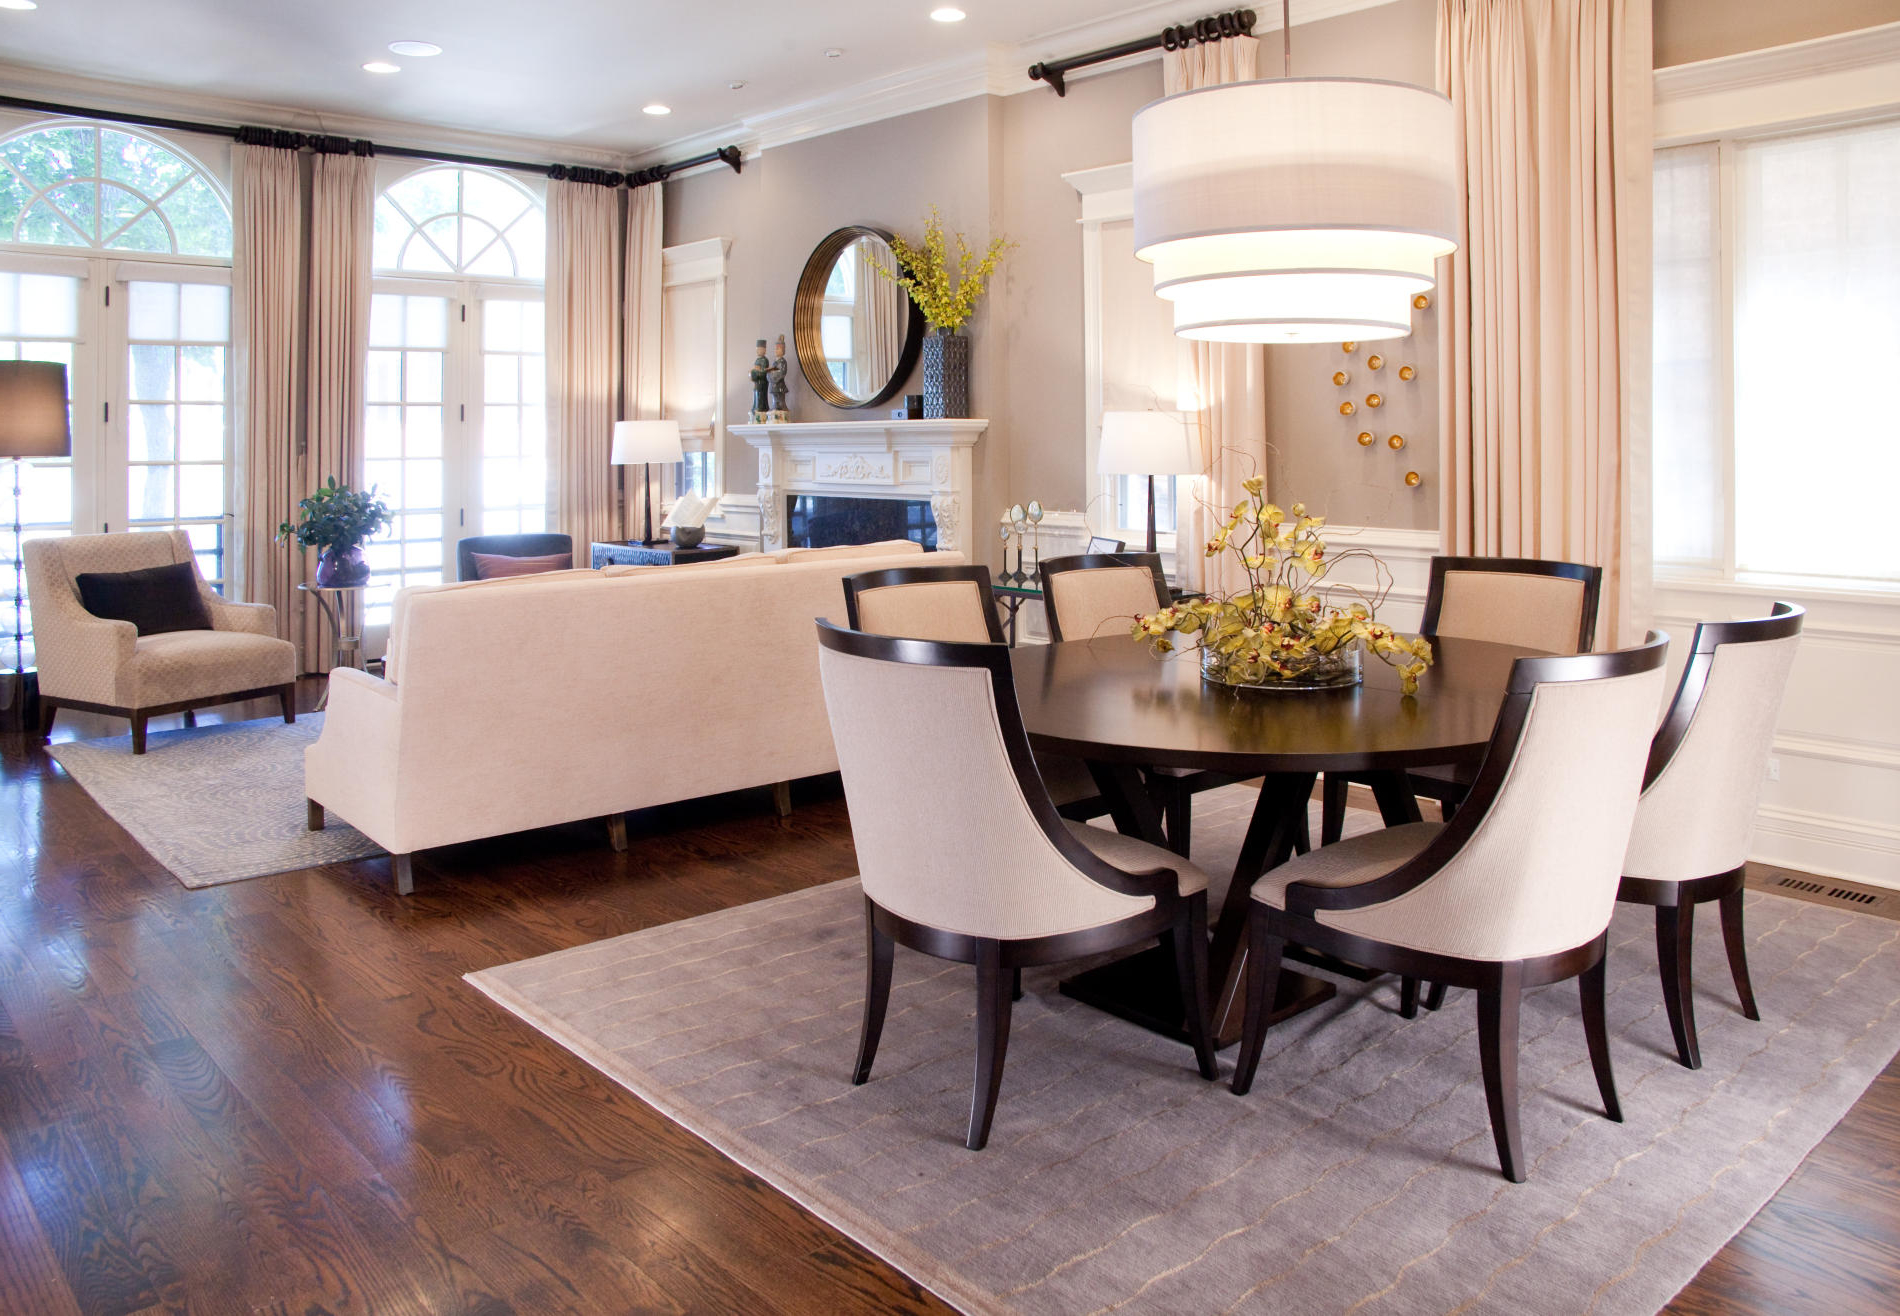 30 Best Formal Dining Room Design And Decor Ideas #828